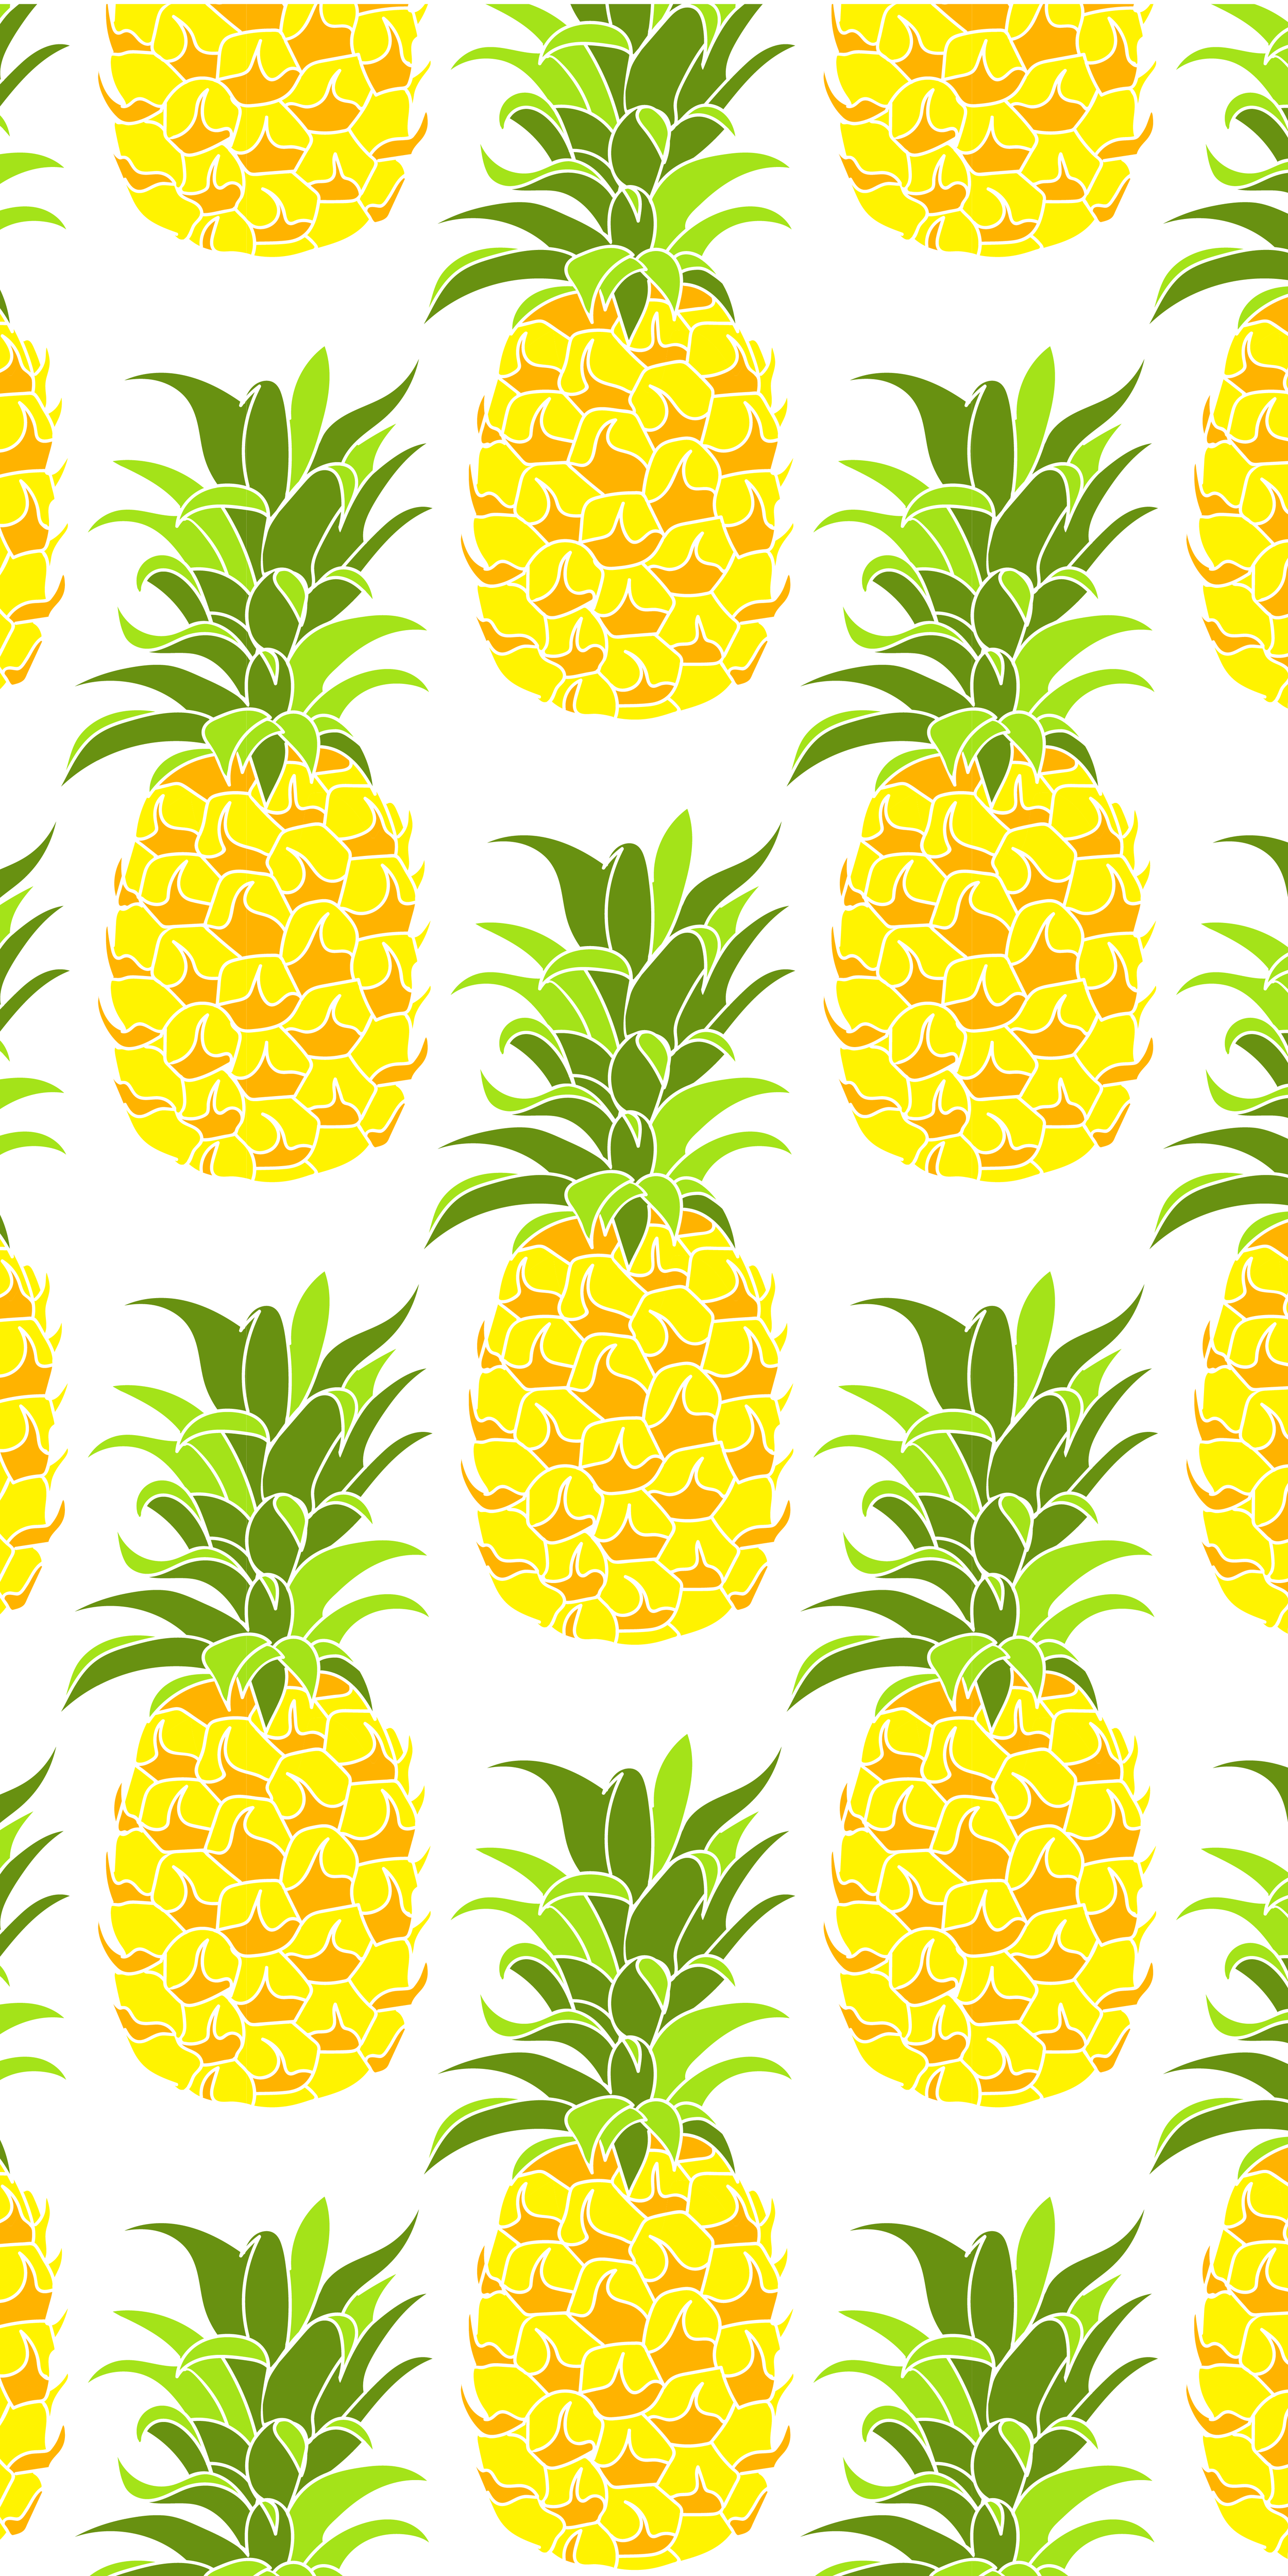 pineappple [Recovered]-01.png